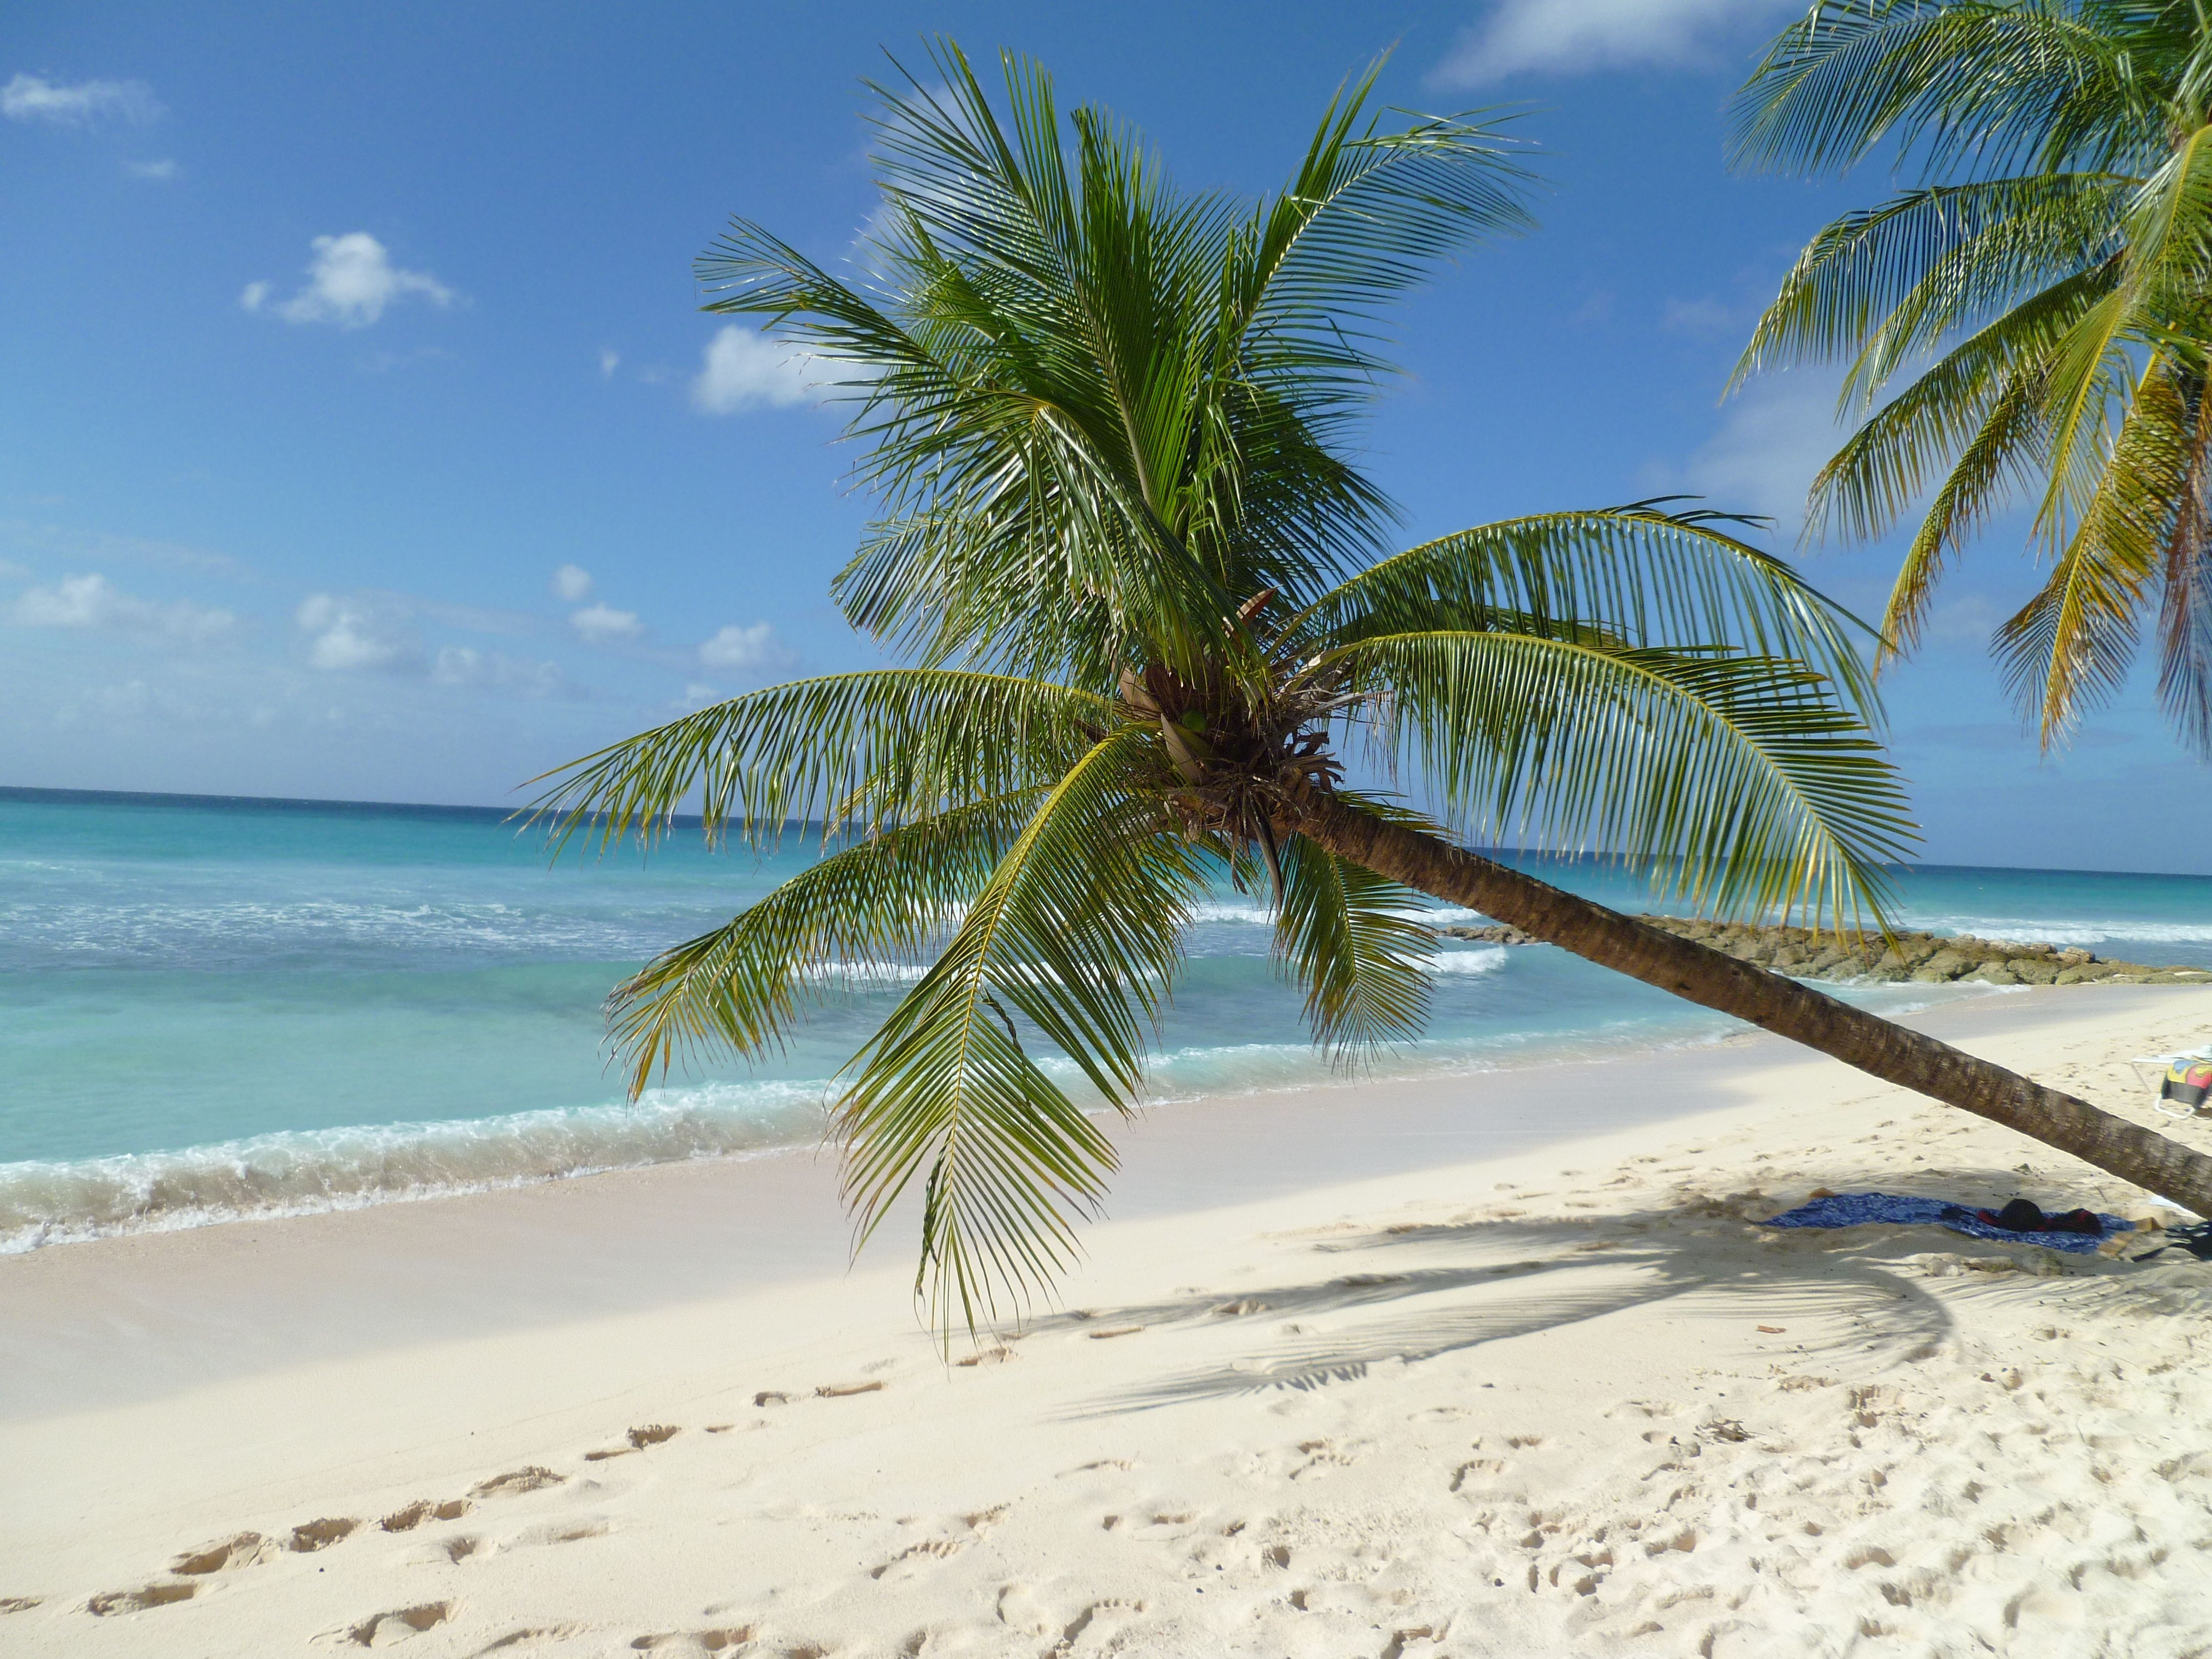 50 Best Beautiful Barbados Images On Pinterest: Favorite Places & Spaces